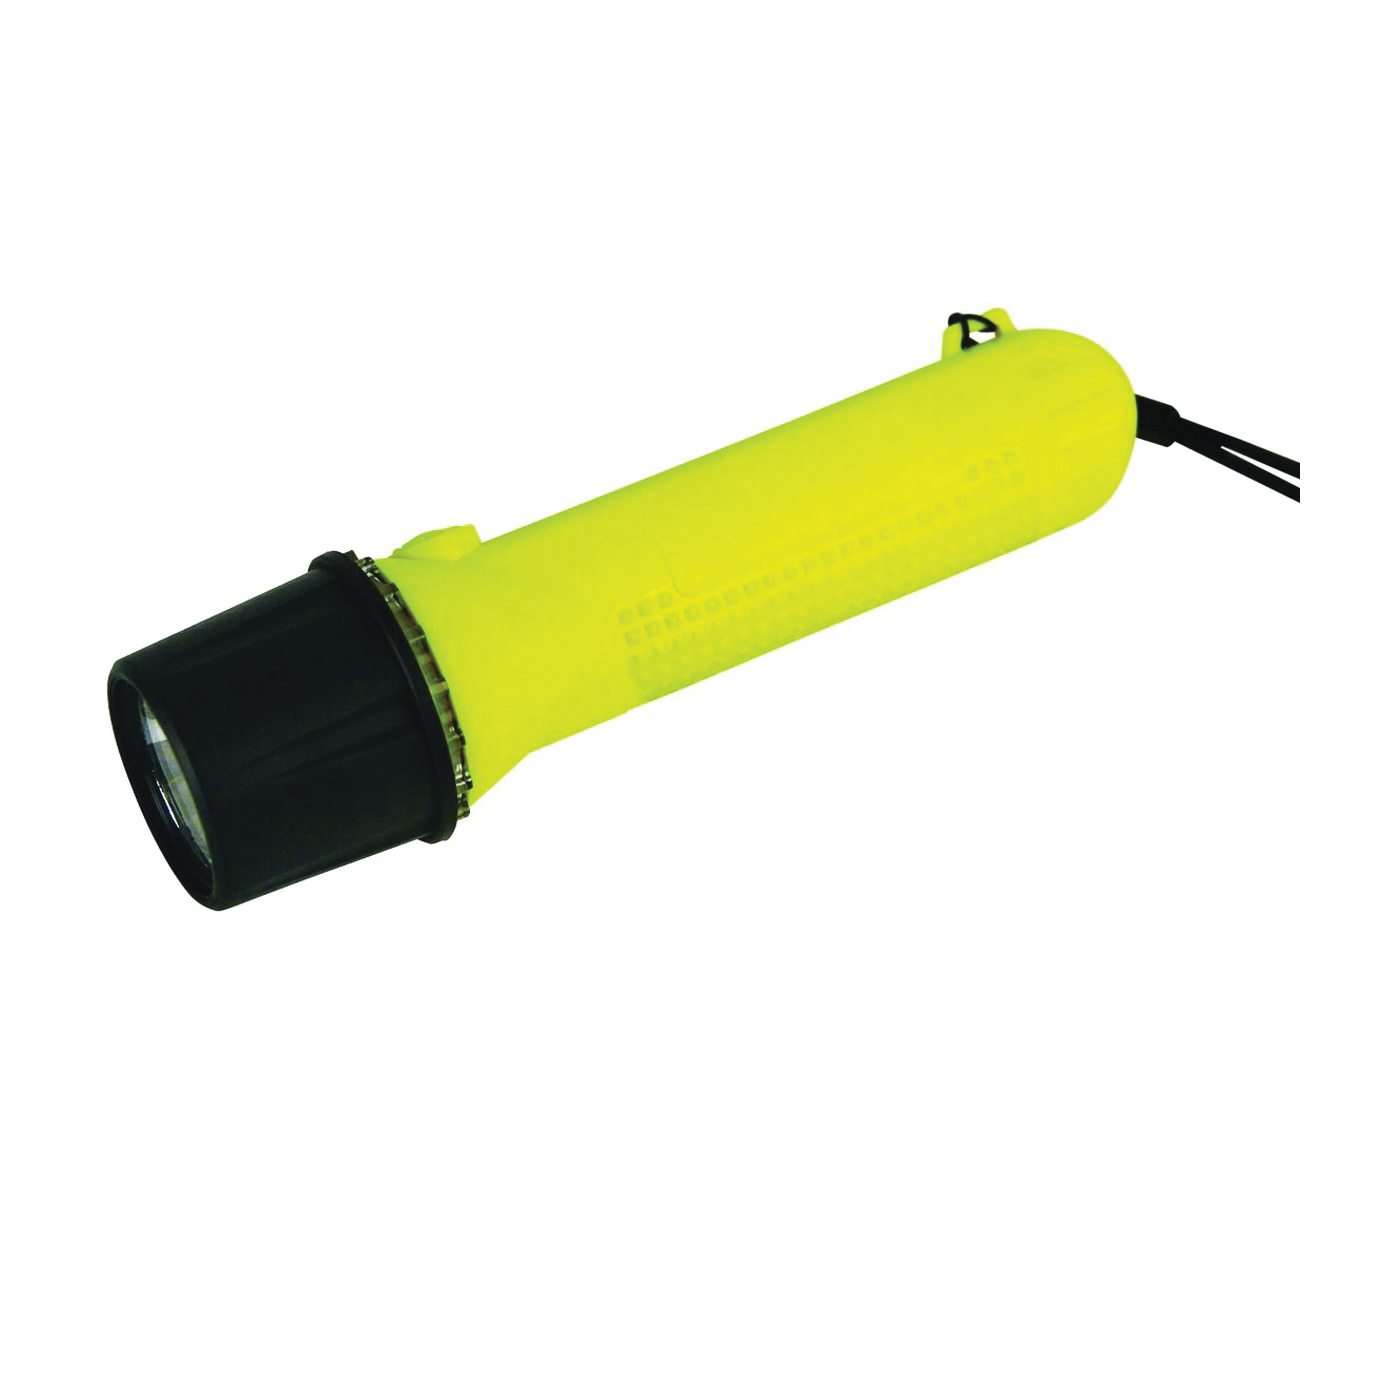 Picture of Dorcy 41-0093 Flashlight, AA Battery, Alkaline Battery, LED Lamp, 65 Lumens, 130 m Beam Distance, 14 hr Run Time